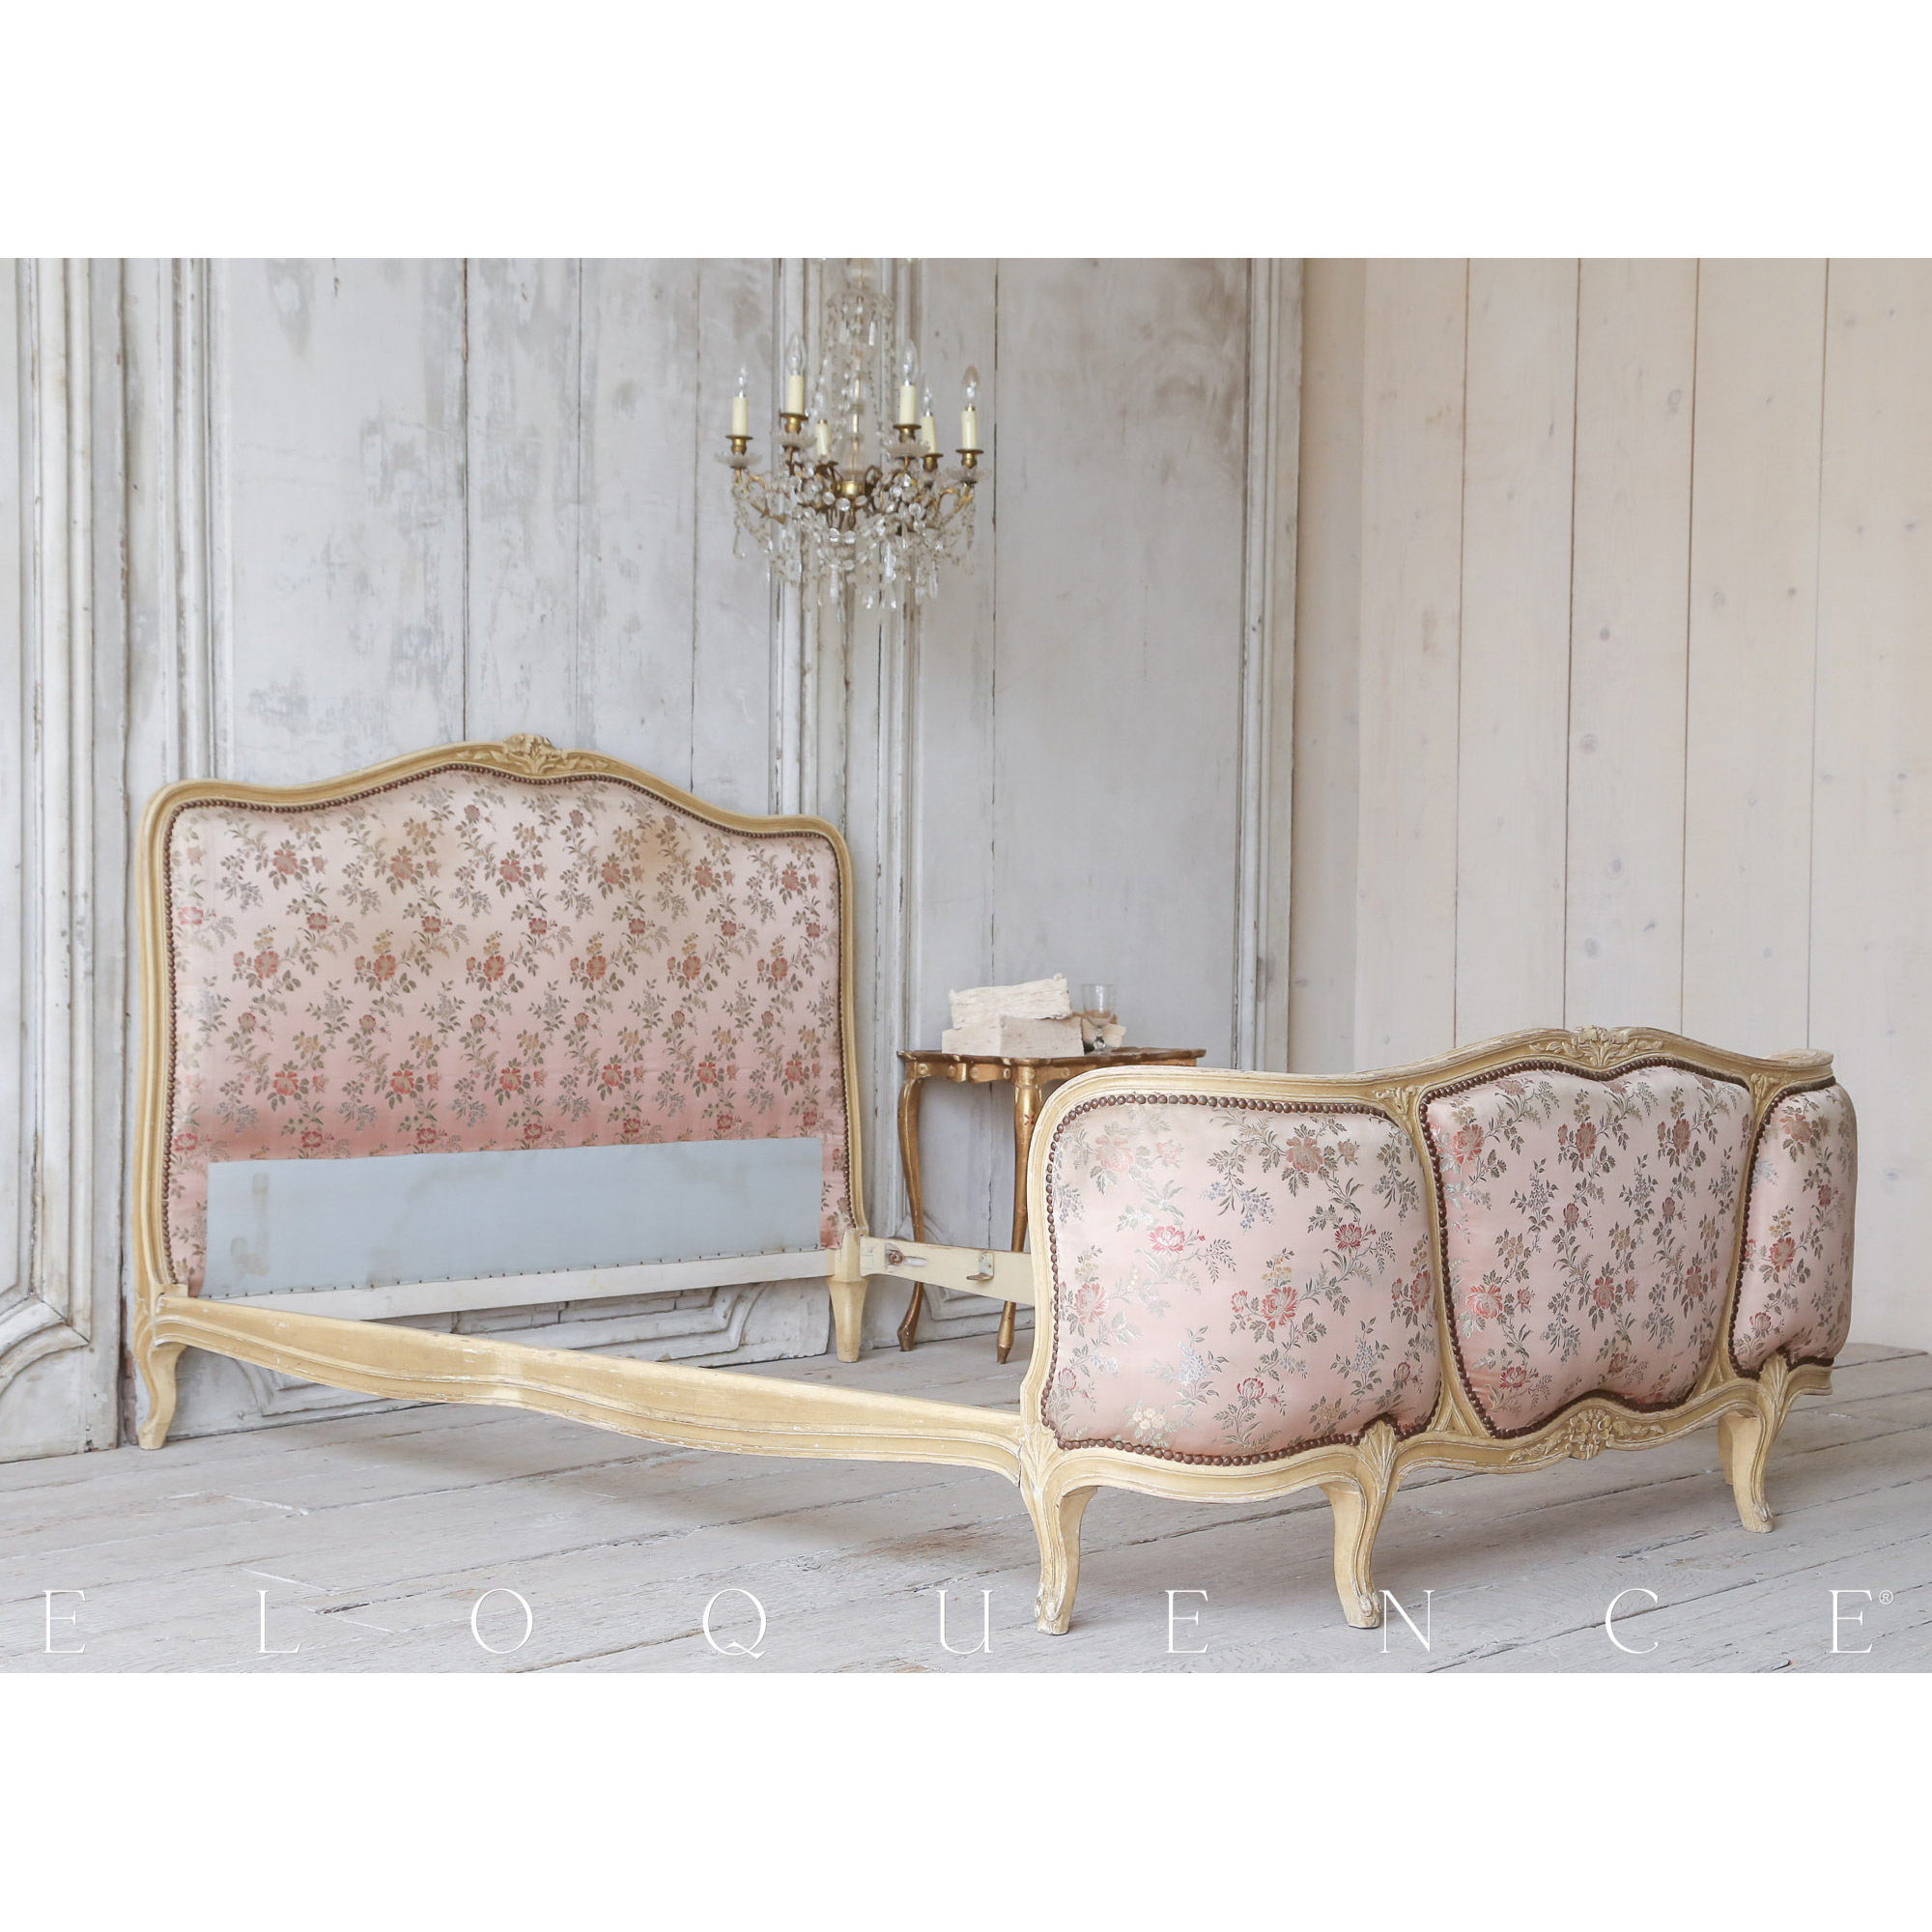 Eloquence® Antique French Dusty Rose Satin Damask Bed 1910